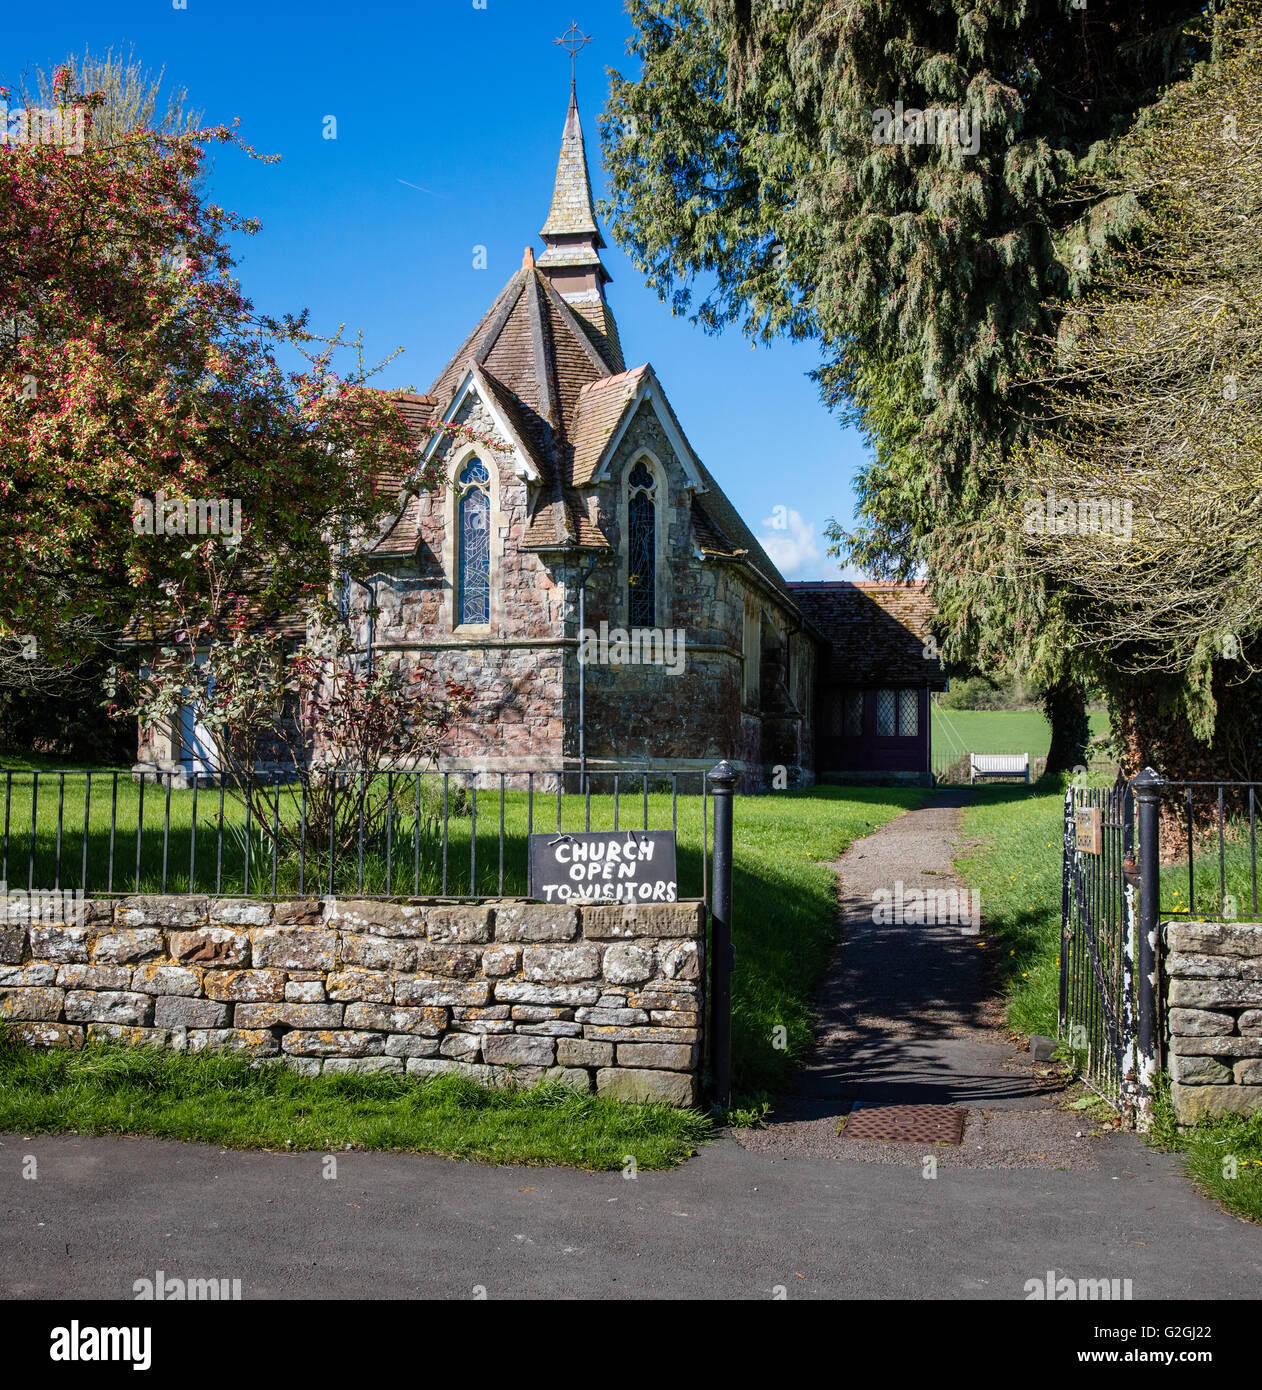 Village church with small spire in the village of Purton on the banks of the estuarine River Severn in Gloucestershire - Stock Image